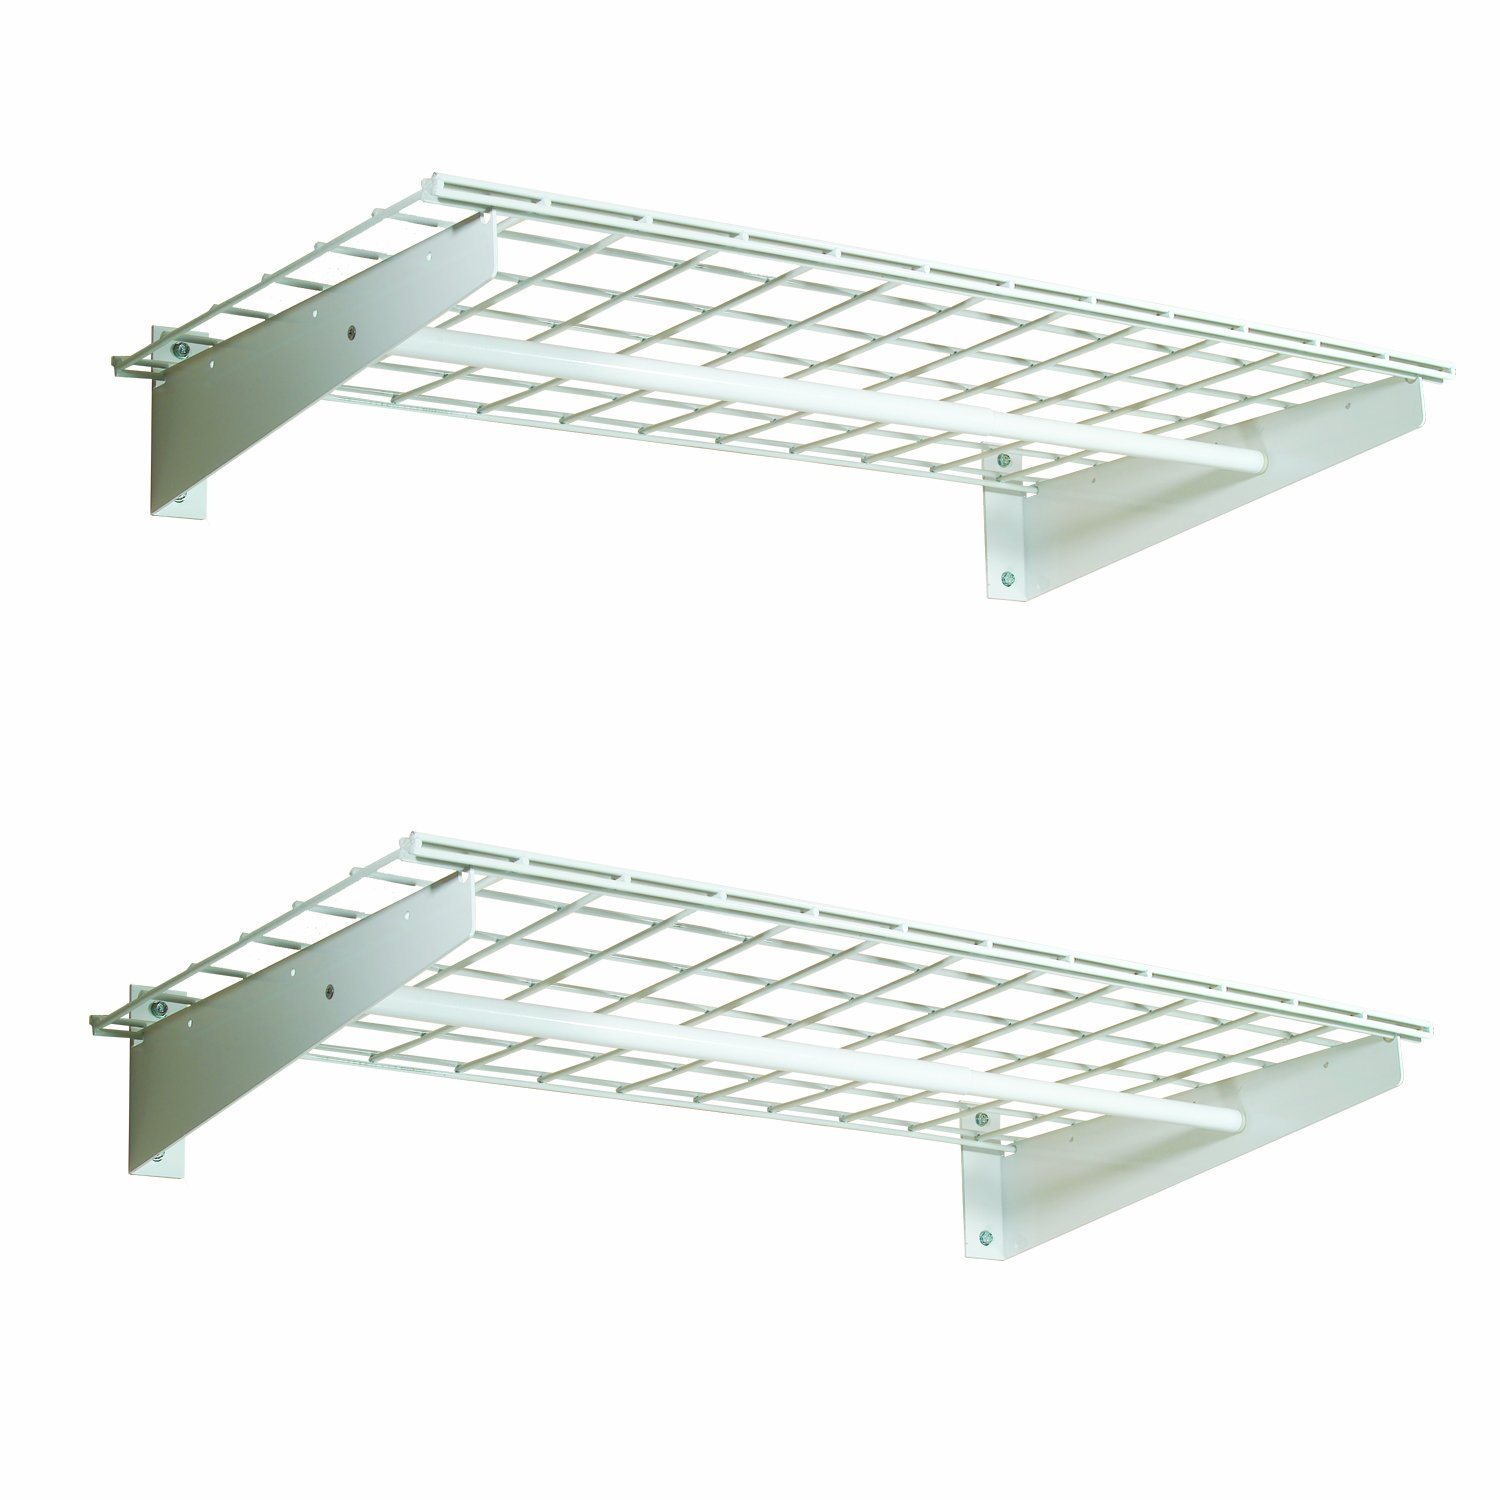 HyLoft 00777 36-by-18-Inch Wall Shelf with Hanging Rod, 2-Pack by HyLoft